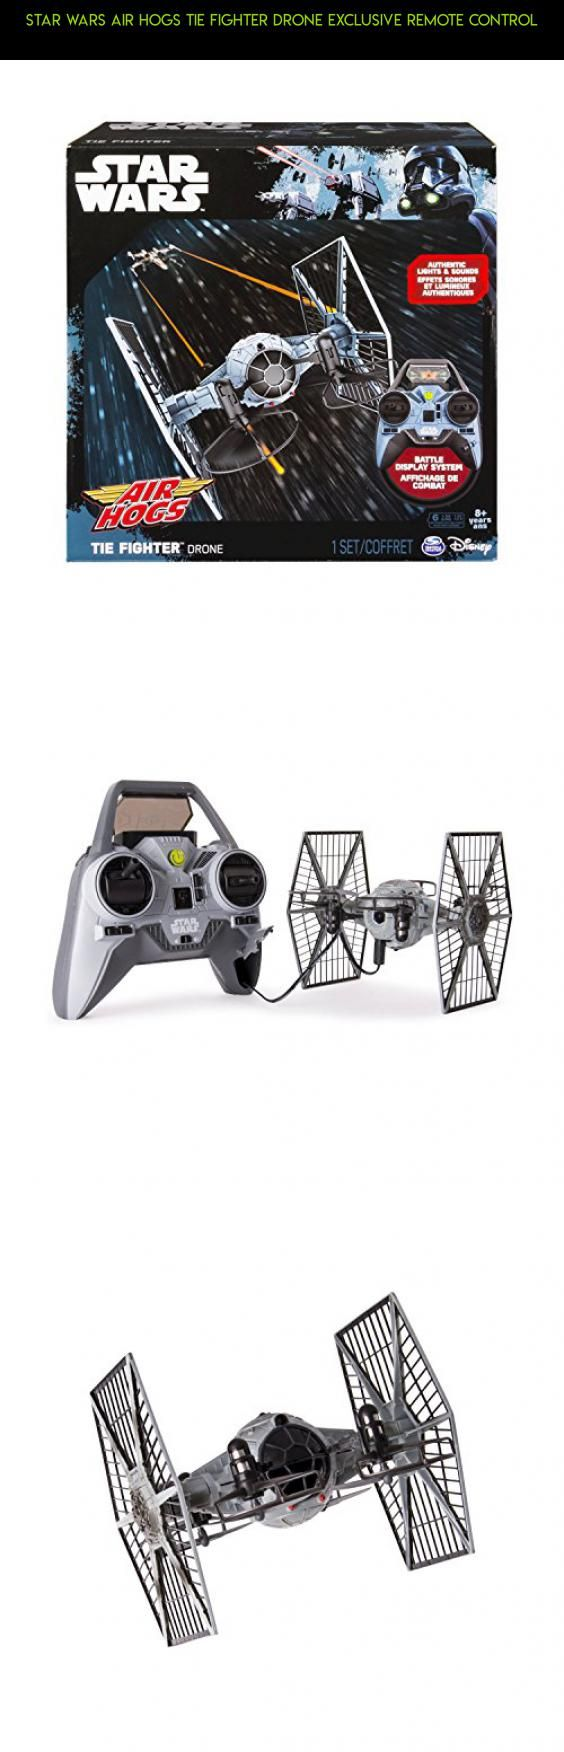 Star Wars Air Hogs Tie Fighter Drone Exclusive Remote Control #fpv #air #kit #star #drone #technology #plans #camera #tech #racing #gadgets #parts #hogs #wars #products #shopping